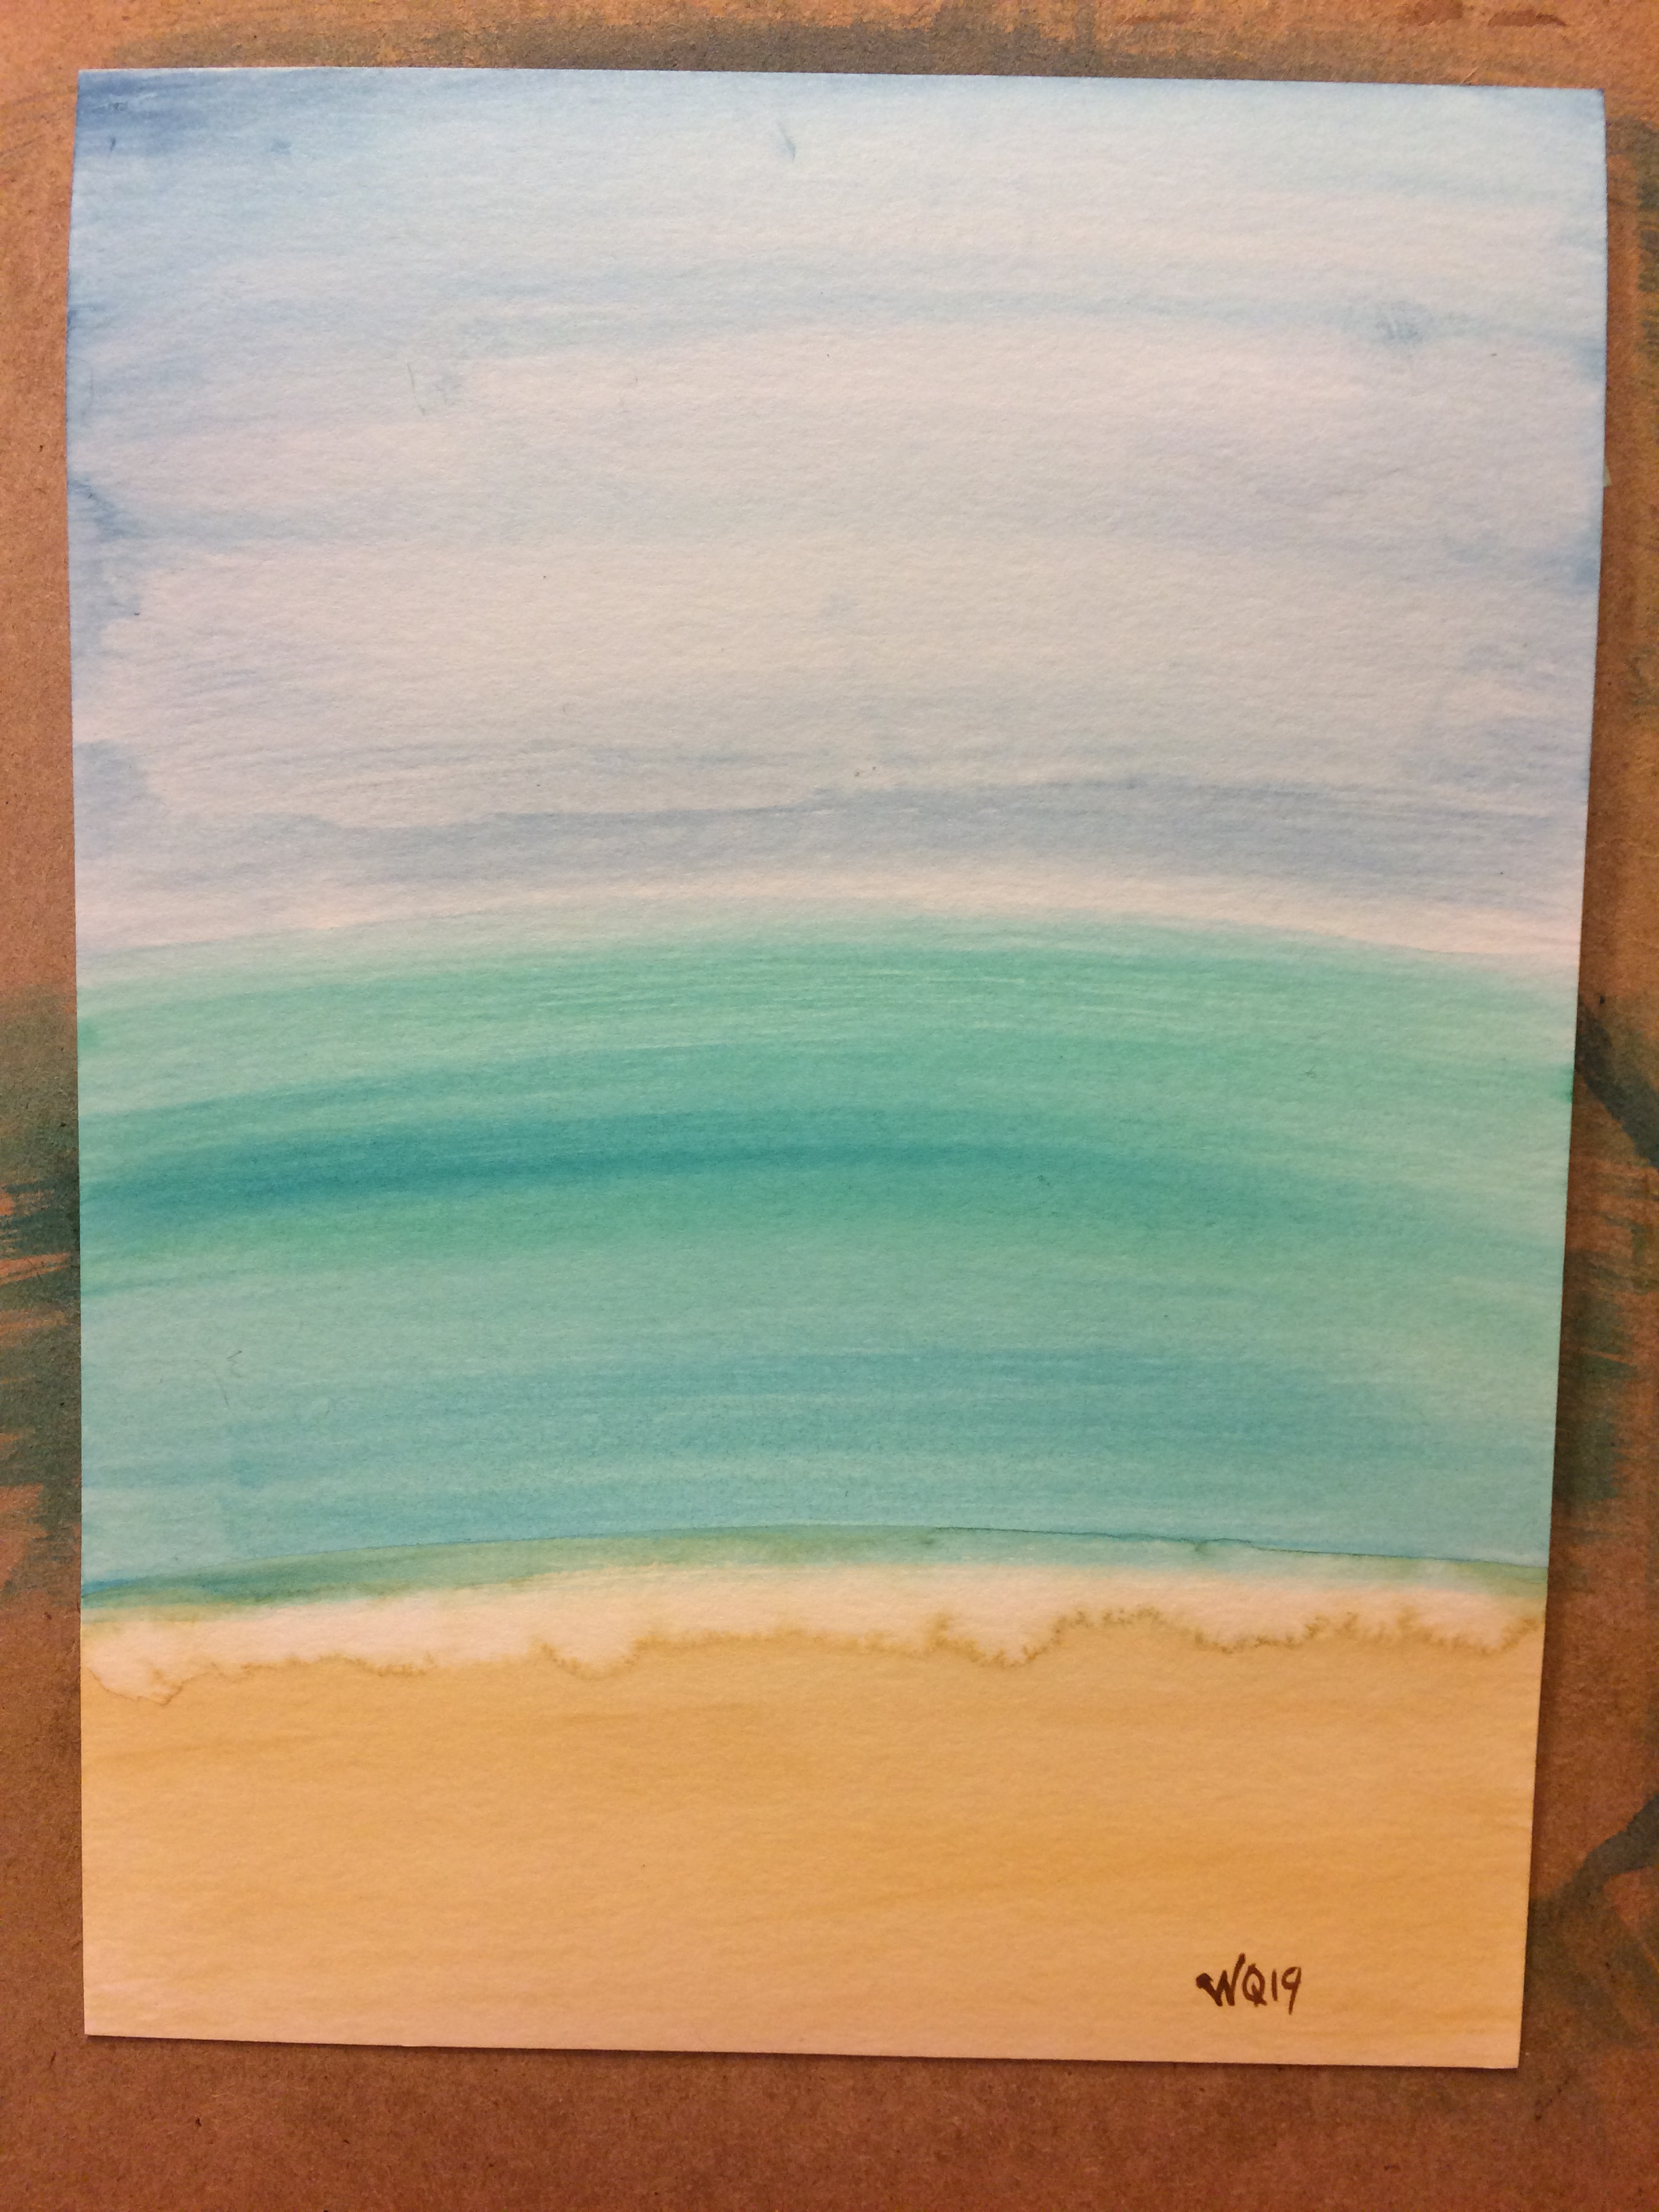 watercolour painting of sky, ocean, beach